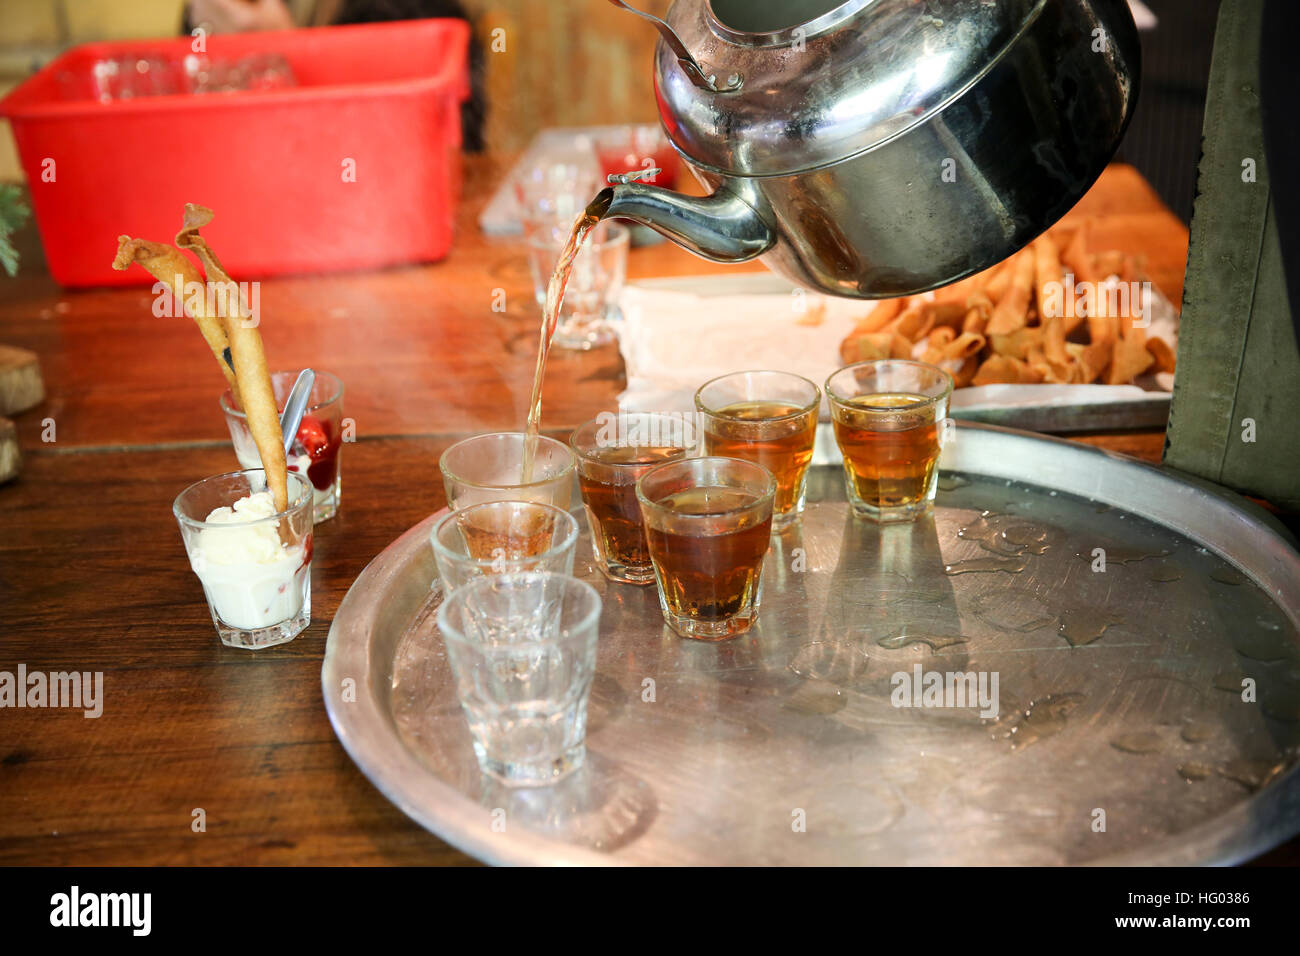 Mid eastern Hospitality - serving tea to visitors. - Stock Image